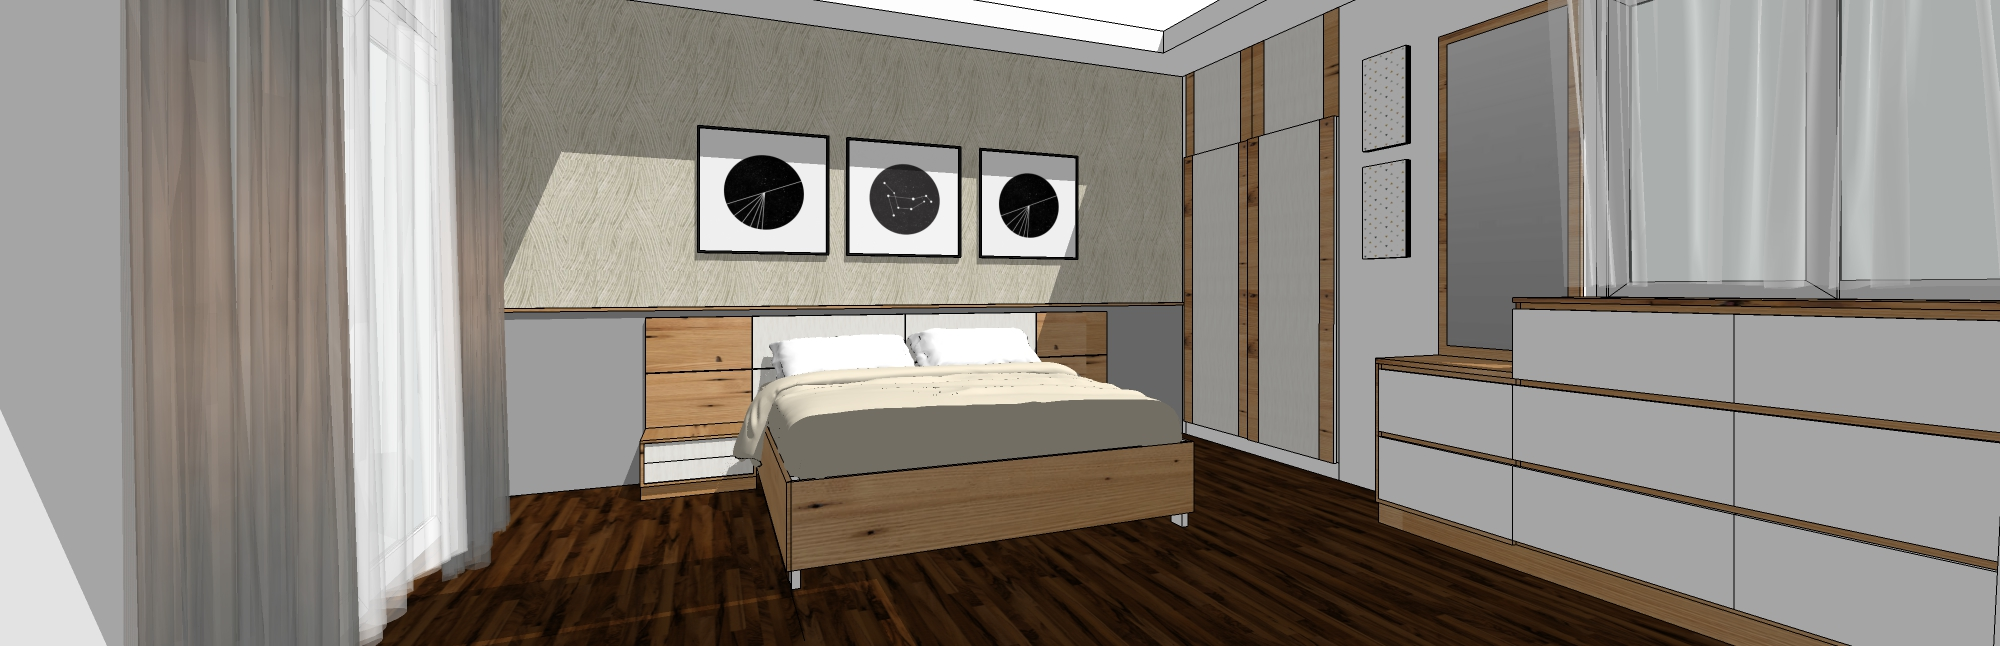 MASTER BEDROOM by Studio Square Design Co by Studio Square Design co.